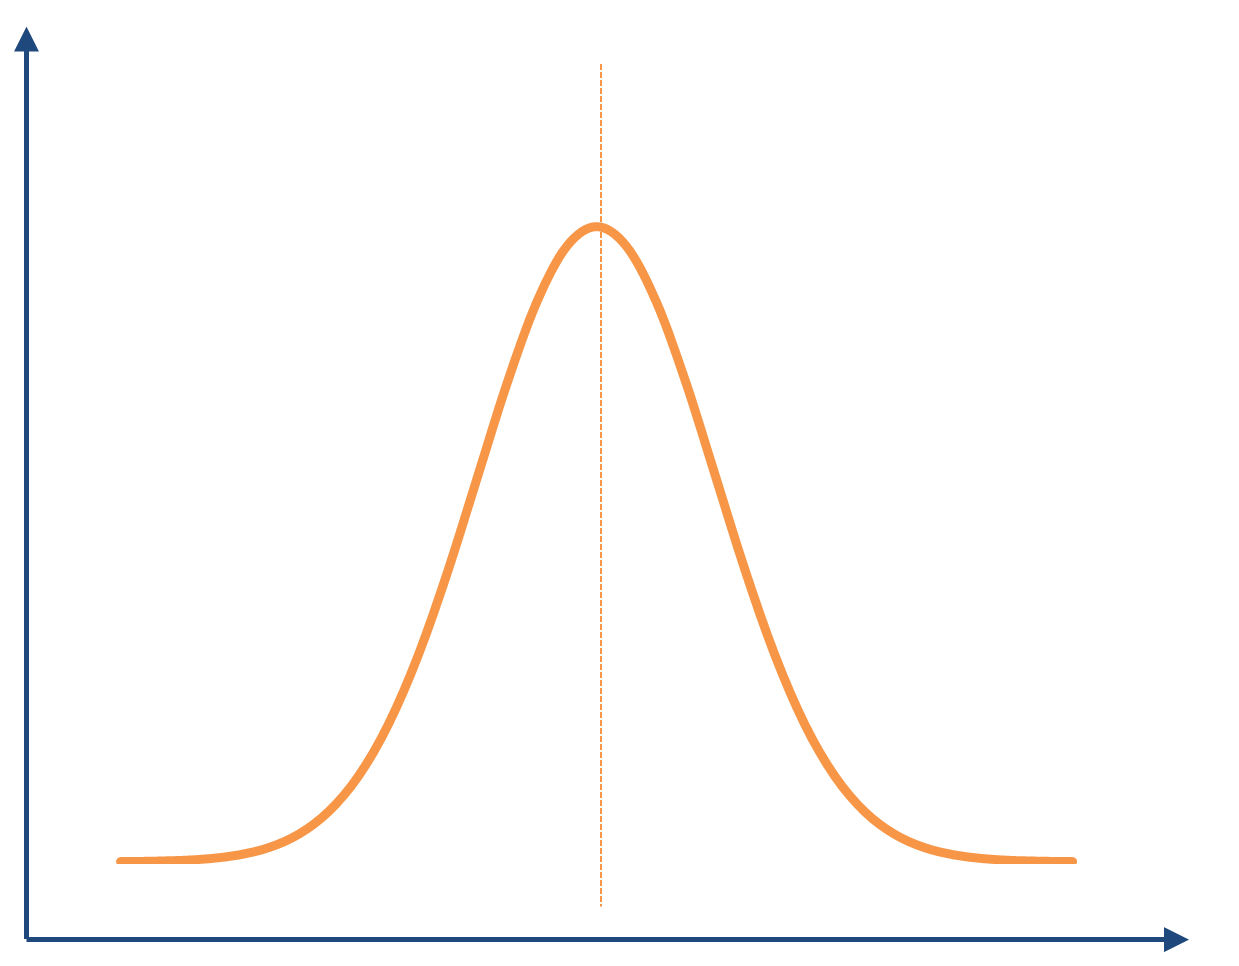 Bell curve png. Average i do not